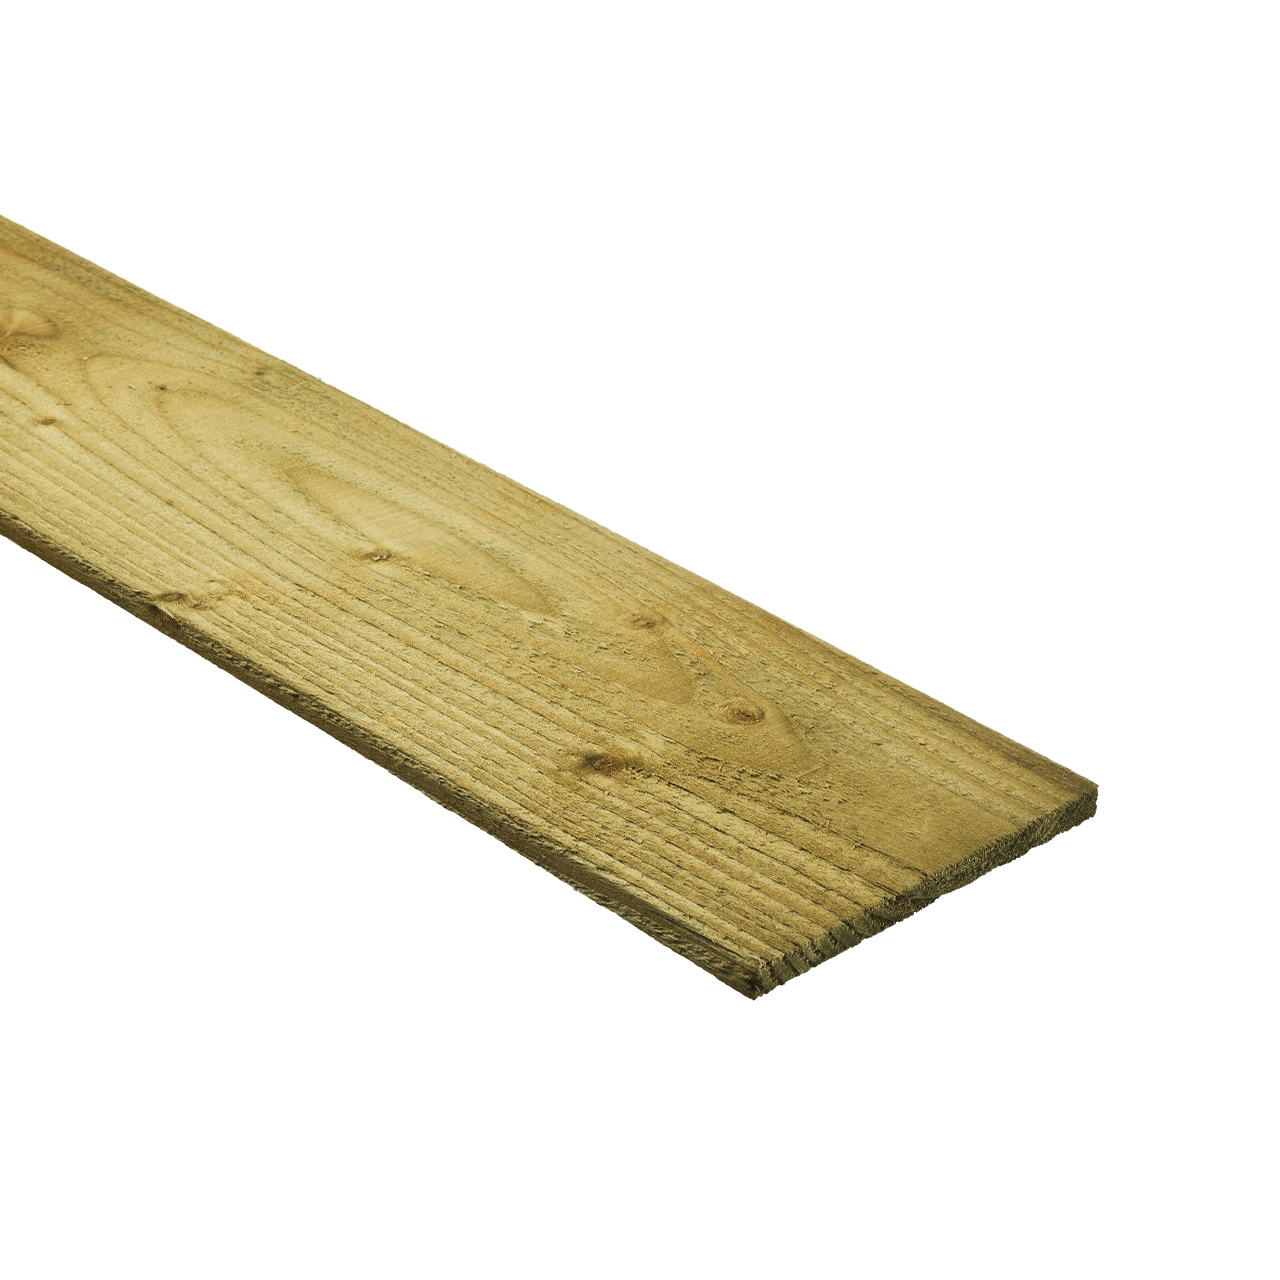 Rough Sawn Carcassing Green Treated 38mm x 100mm image 0